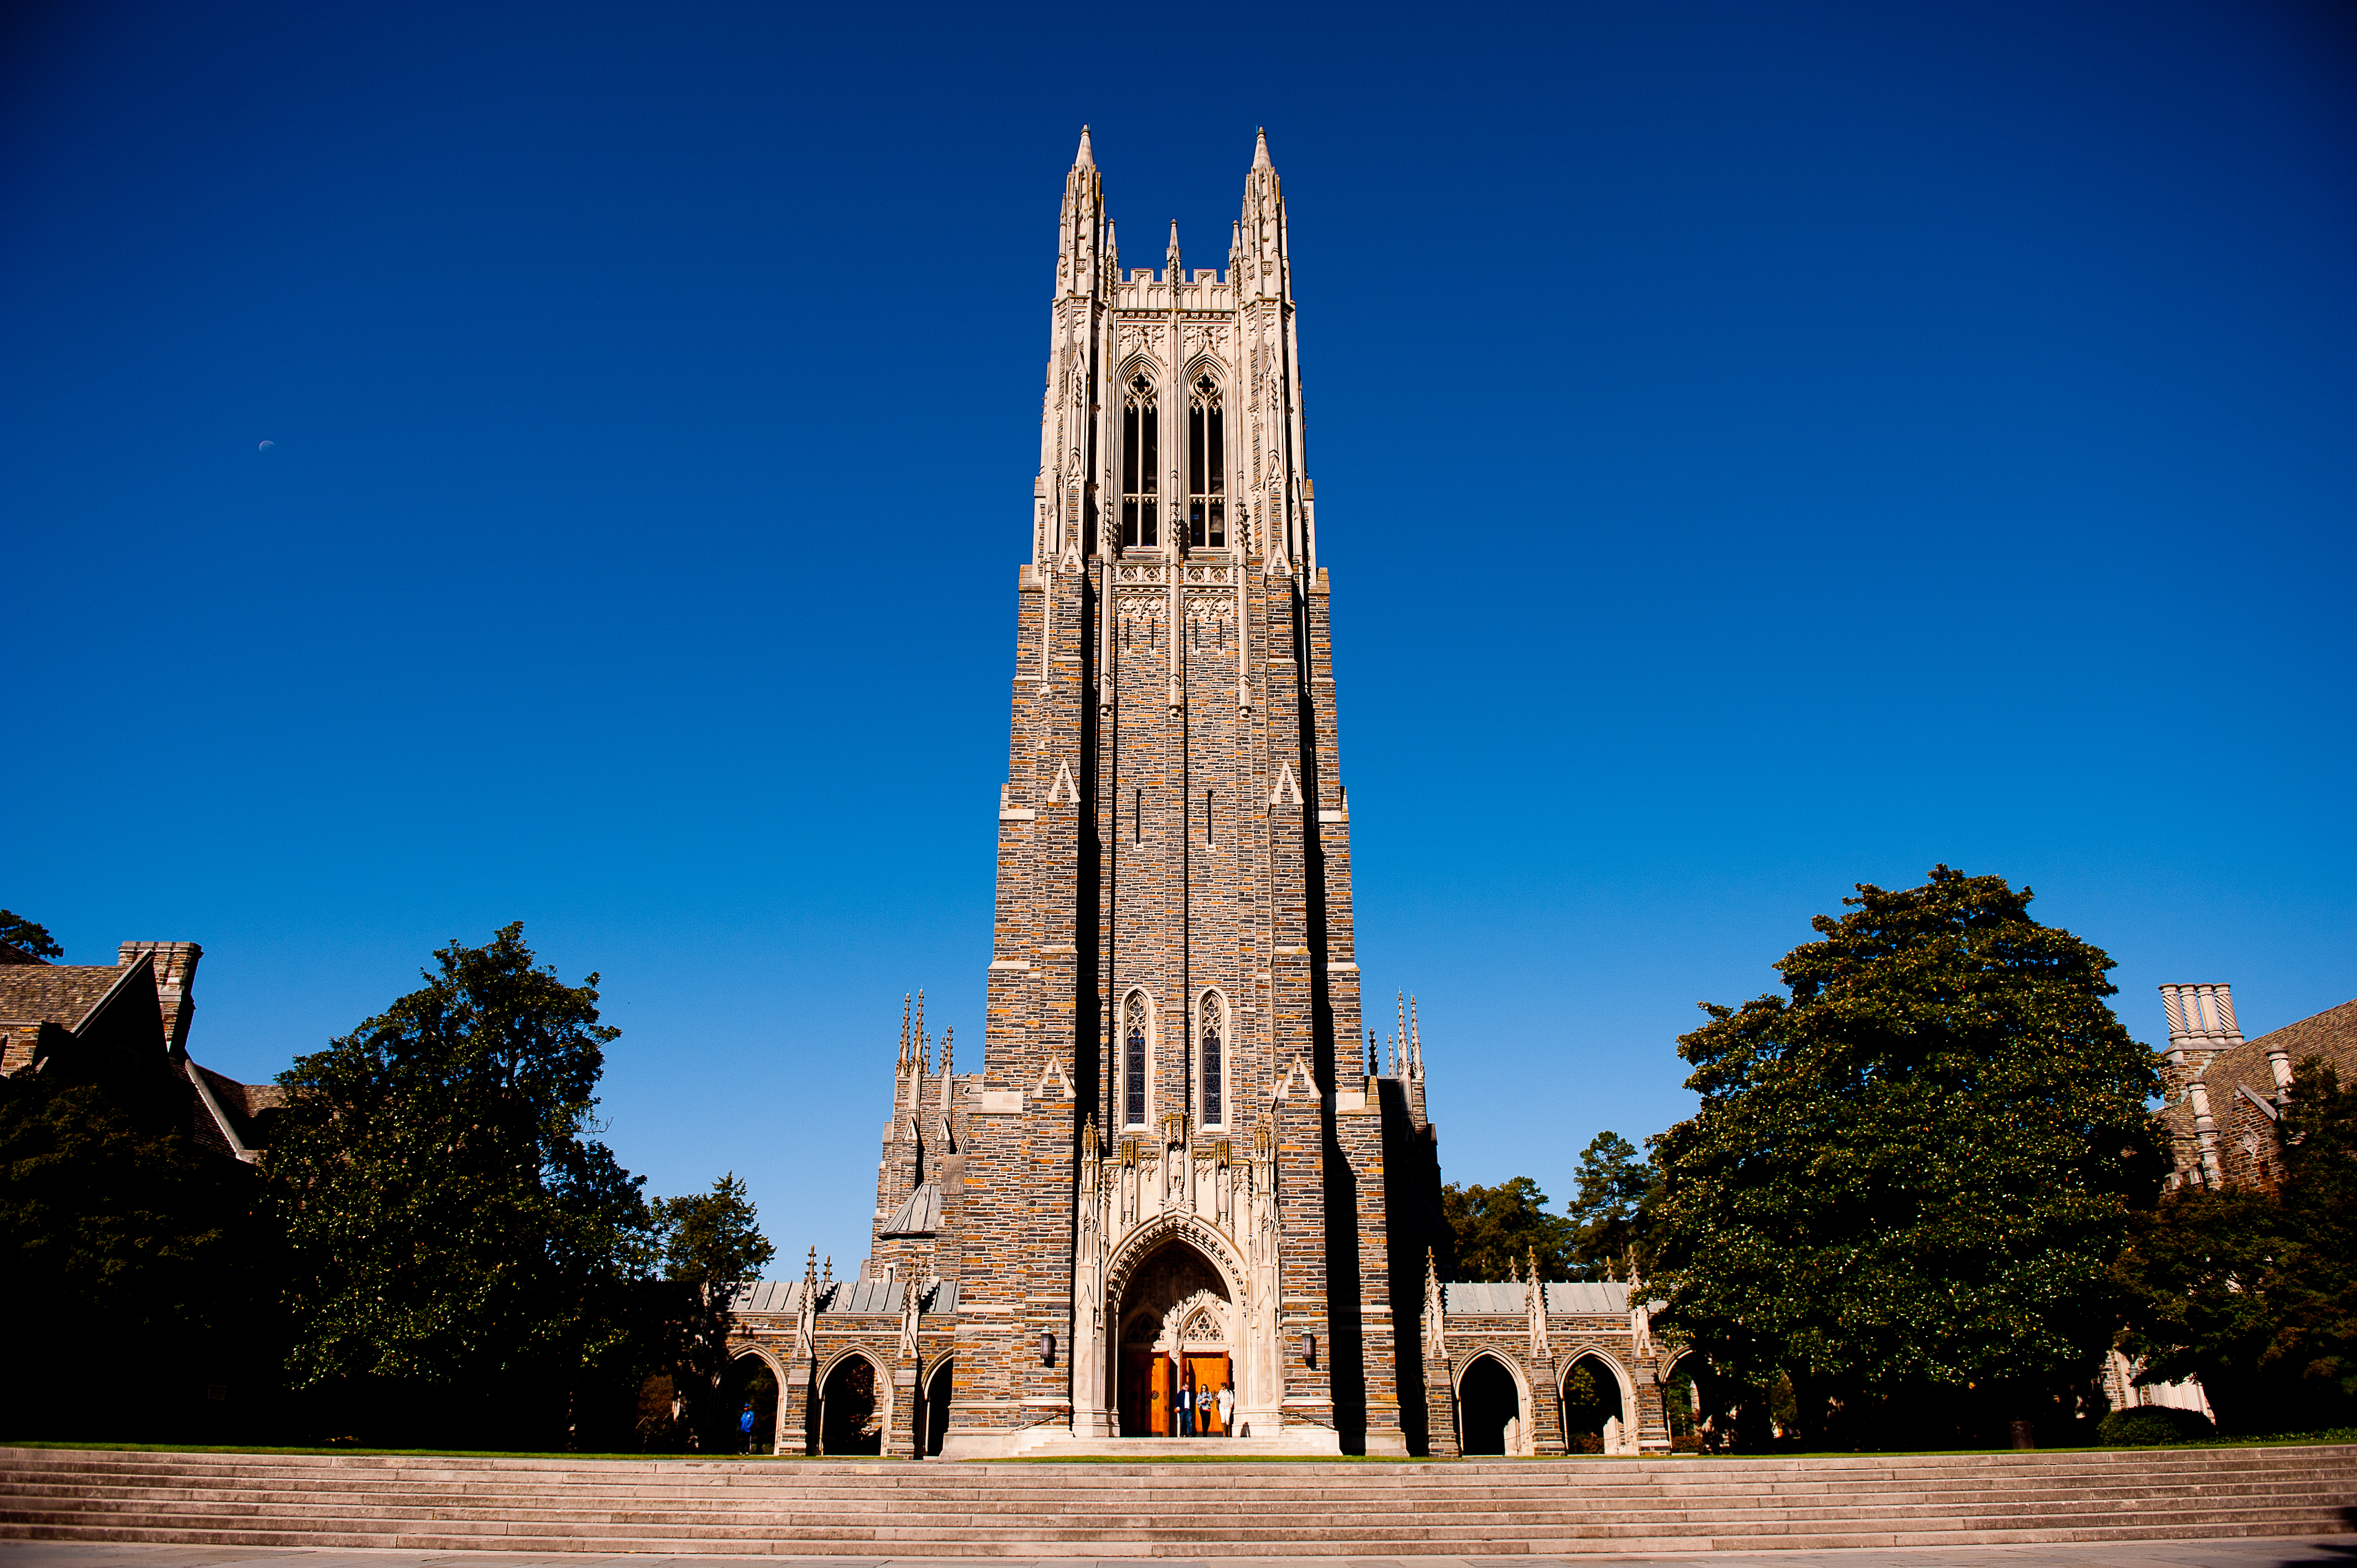 A general view of the Duke University Chapel on campus of Duke University on Oct. 26, 2013 in Durham, North Carolina.